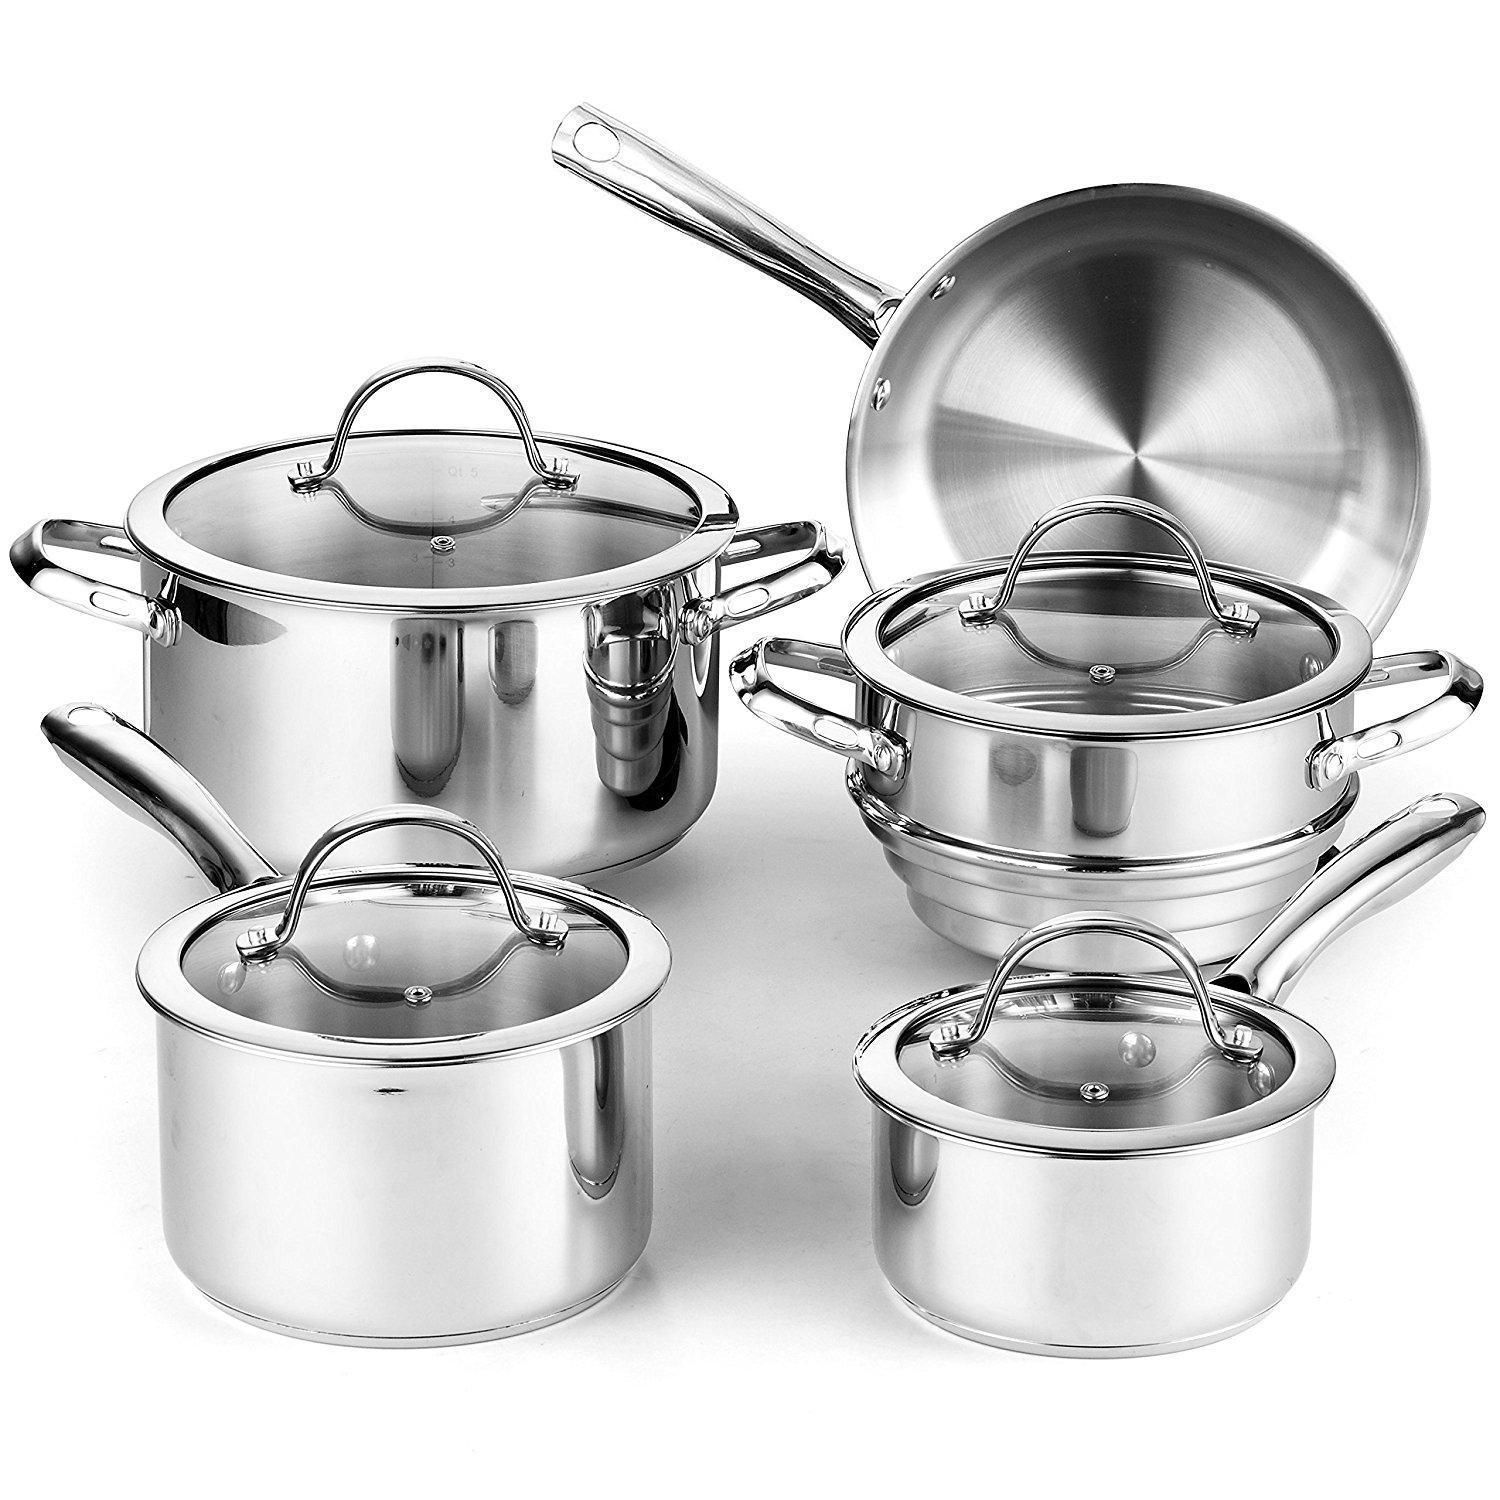 Stainless Steel Cookware Set Oven Dishwasher Safe